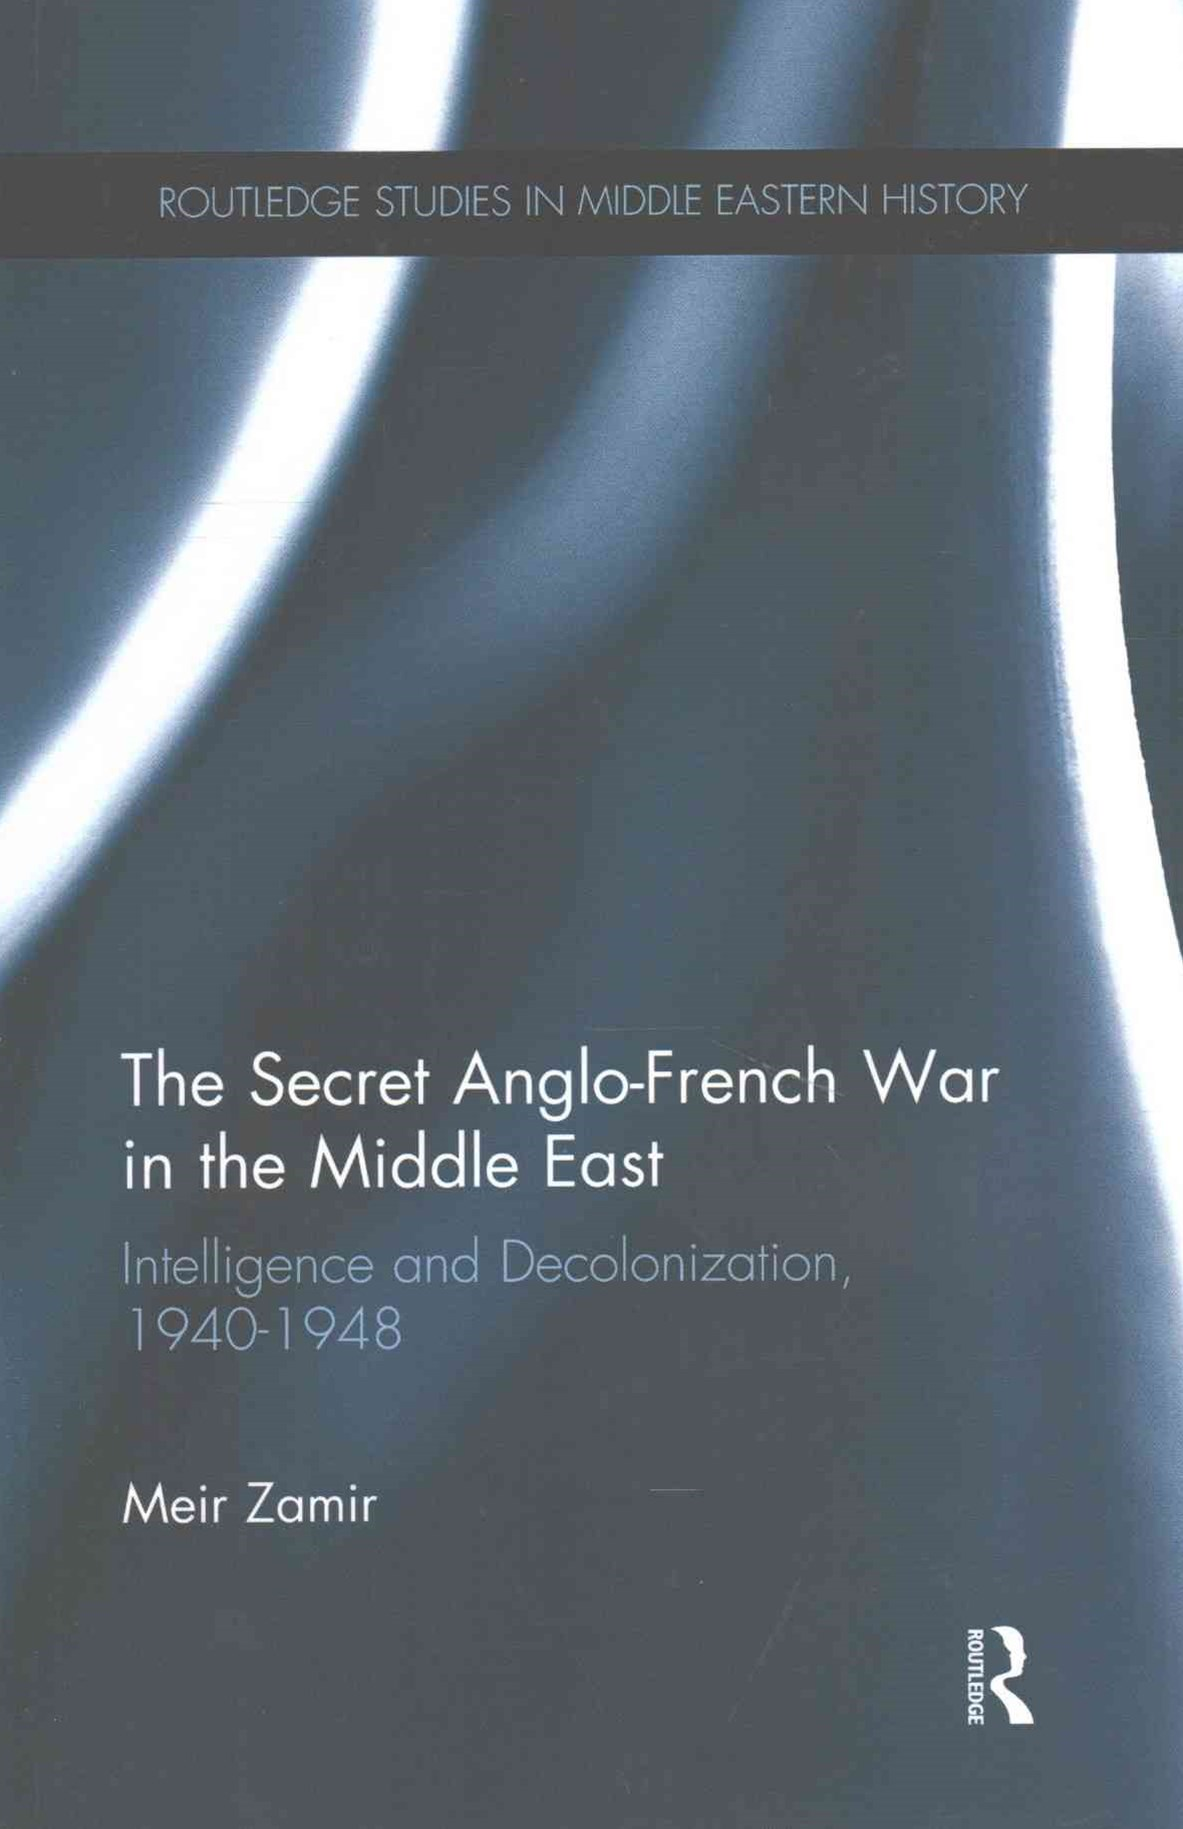 Secret Anglo-French War in the Middle East